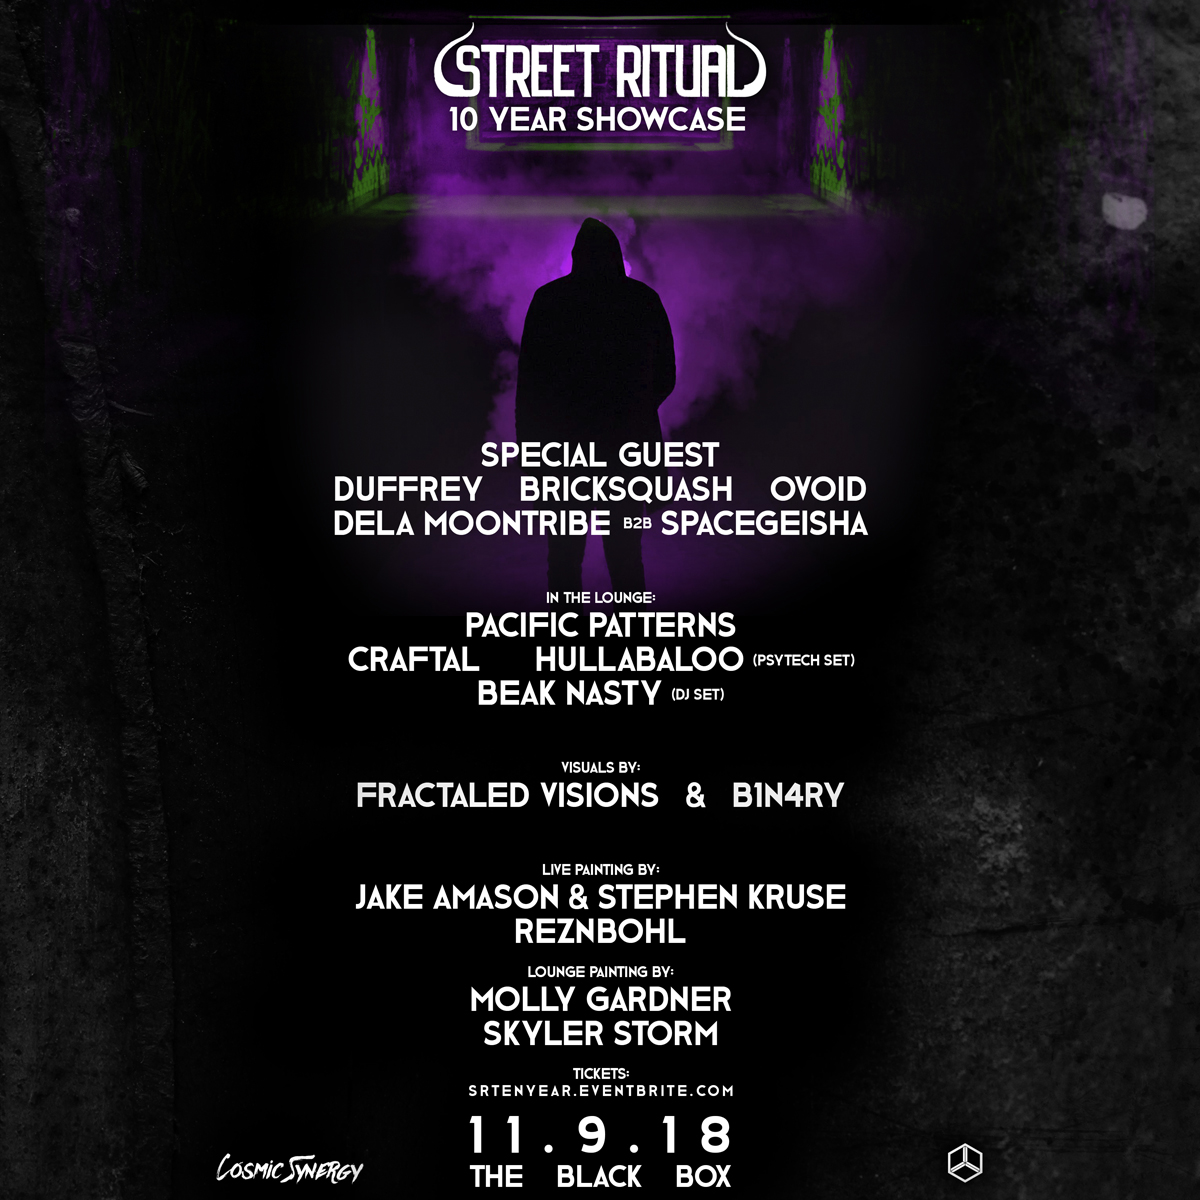 Street Ritual 10 Year Showcase